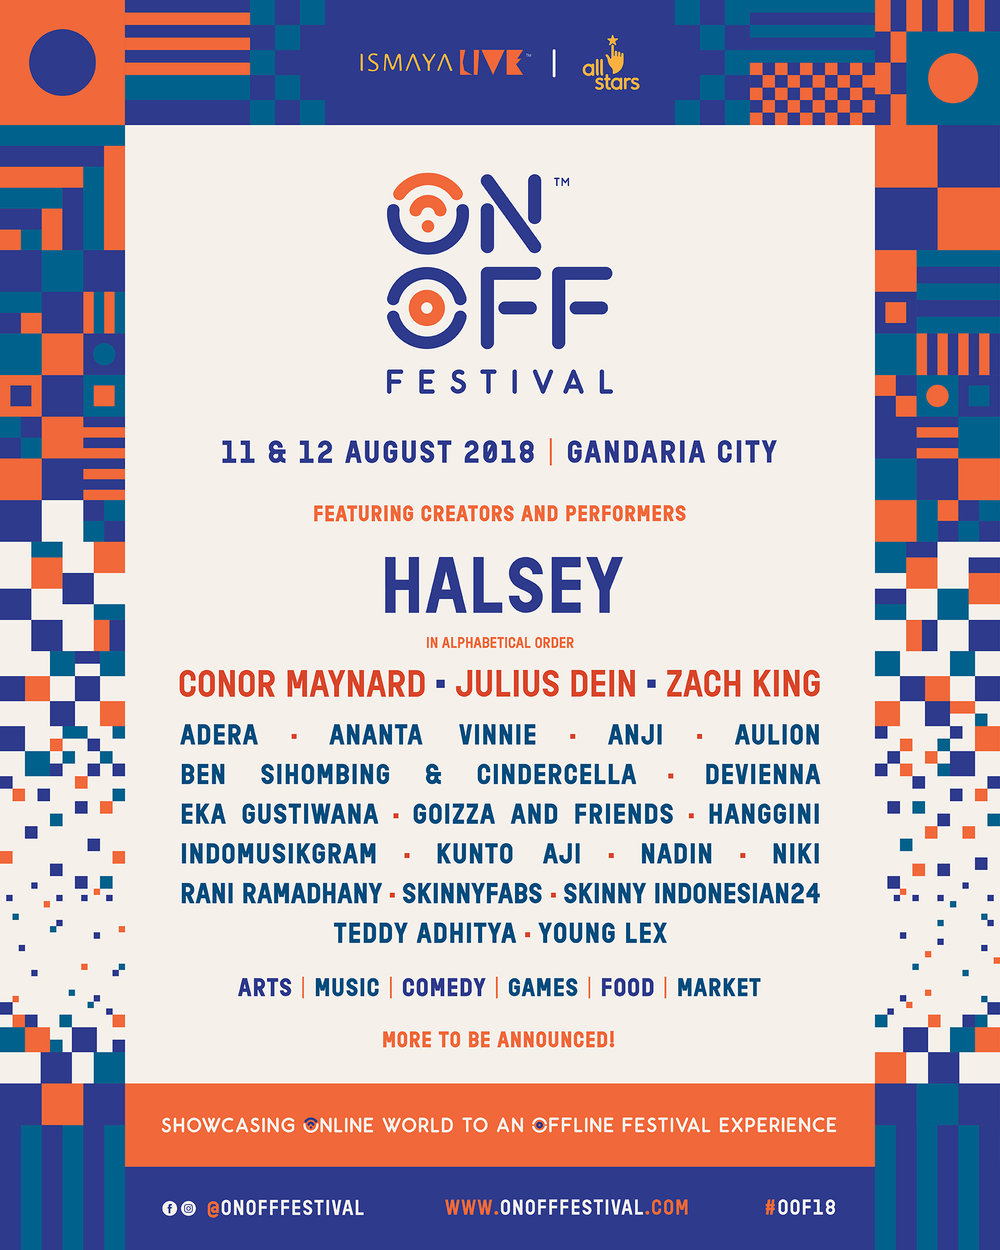 OOF18 | phase 2